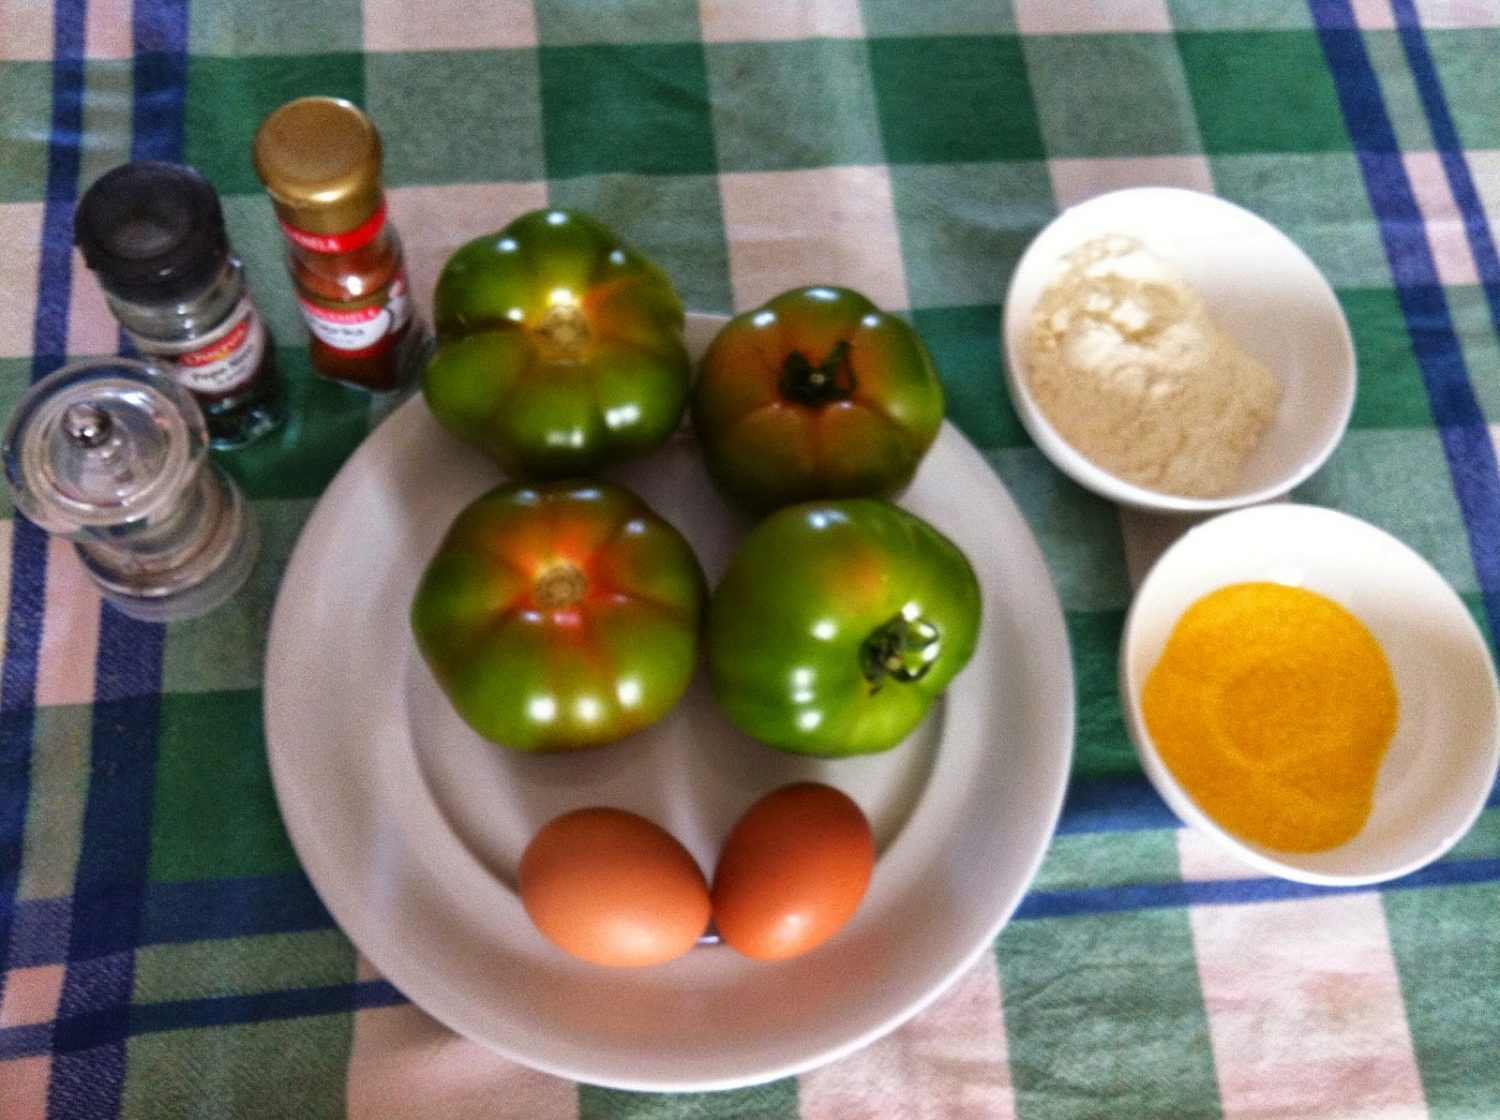 Fried-Green-Tomatoes-Ingredients